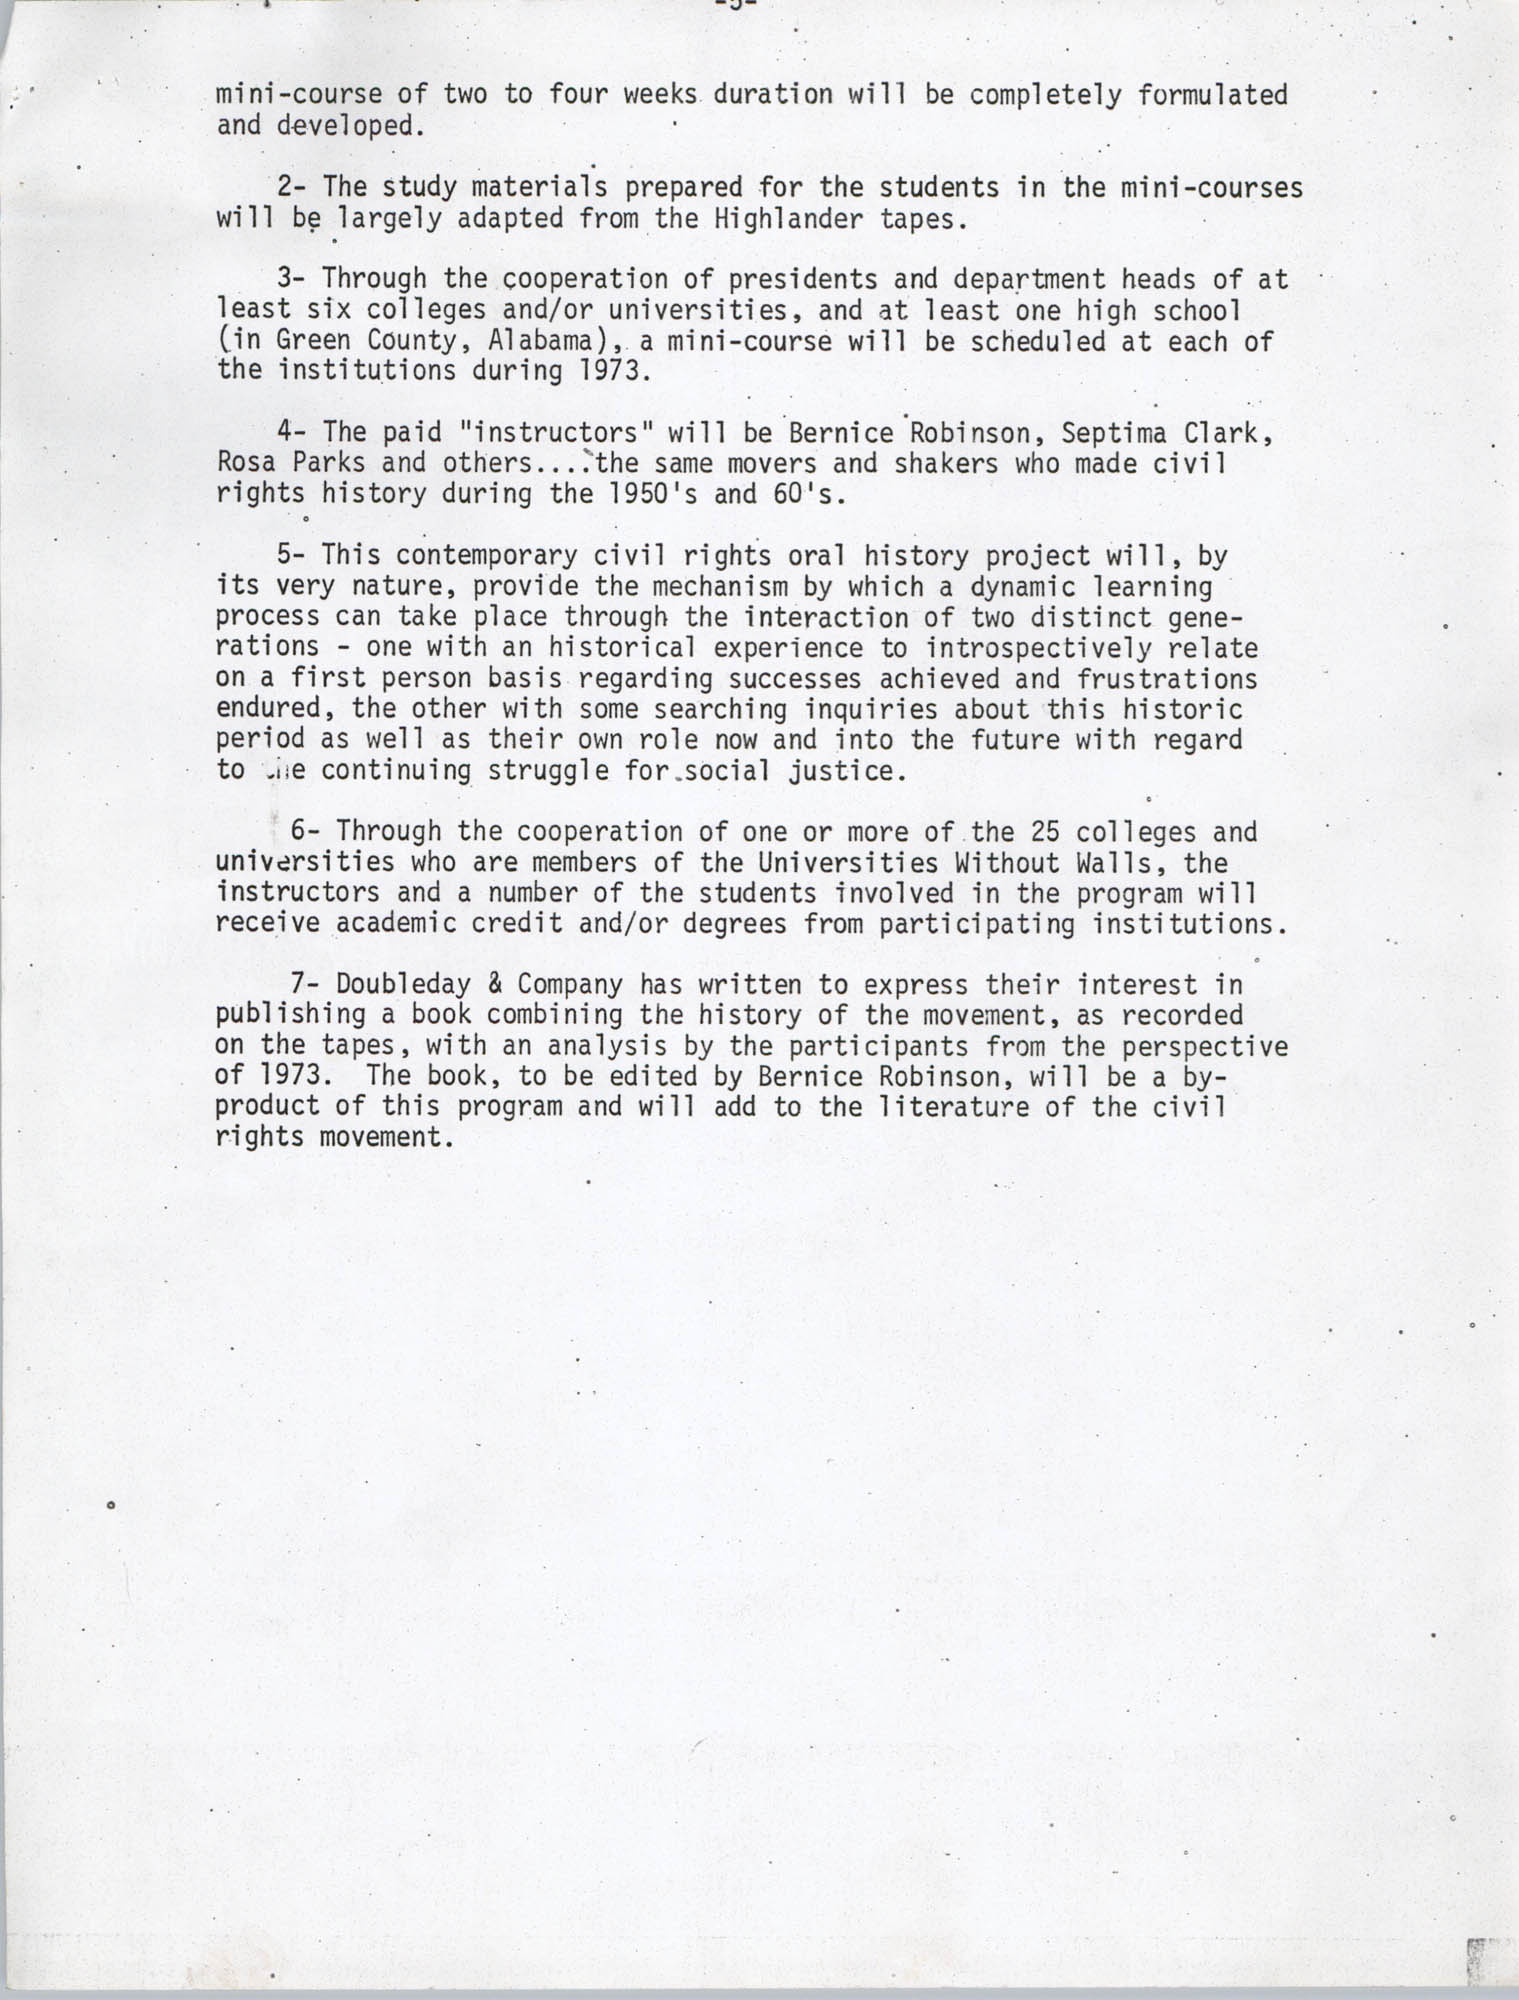 Civil Rights Movement Oral History Project, Foxfire Learning Concept, Appendix C, Page 5